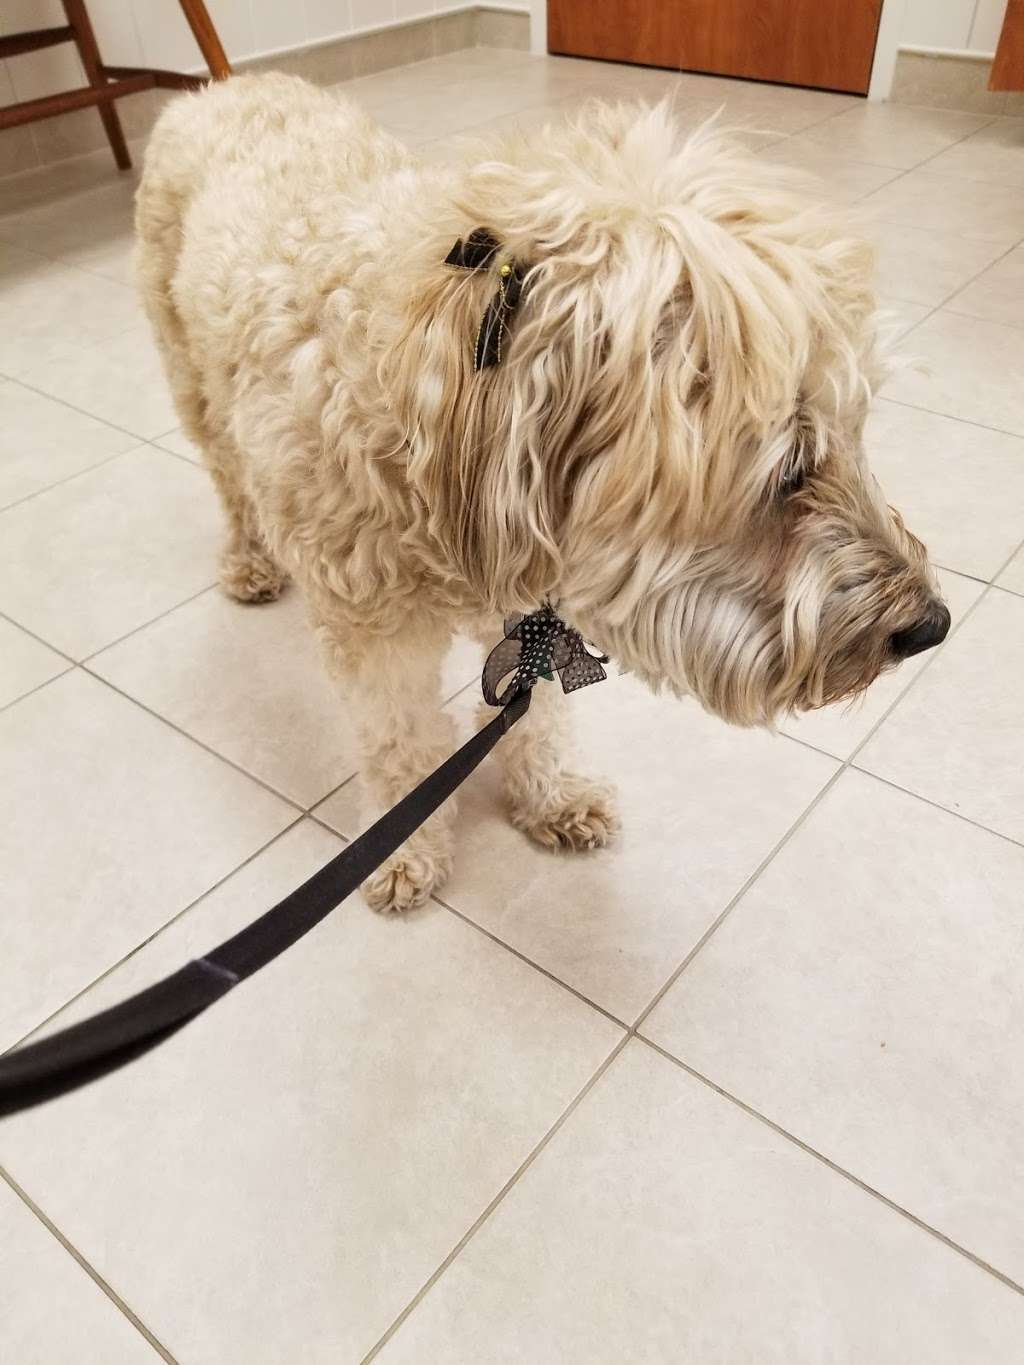 Scituate Animal Hospital - veterinary care  | Photo 1 of 9 | Address: 561 W Greenville Rd, Scituate, RI 02857, USA | Phone: (401) 647-3500